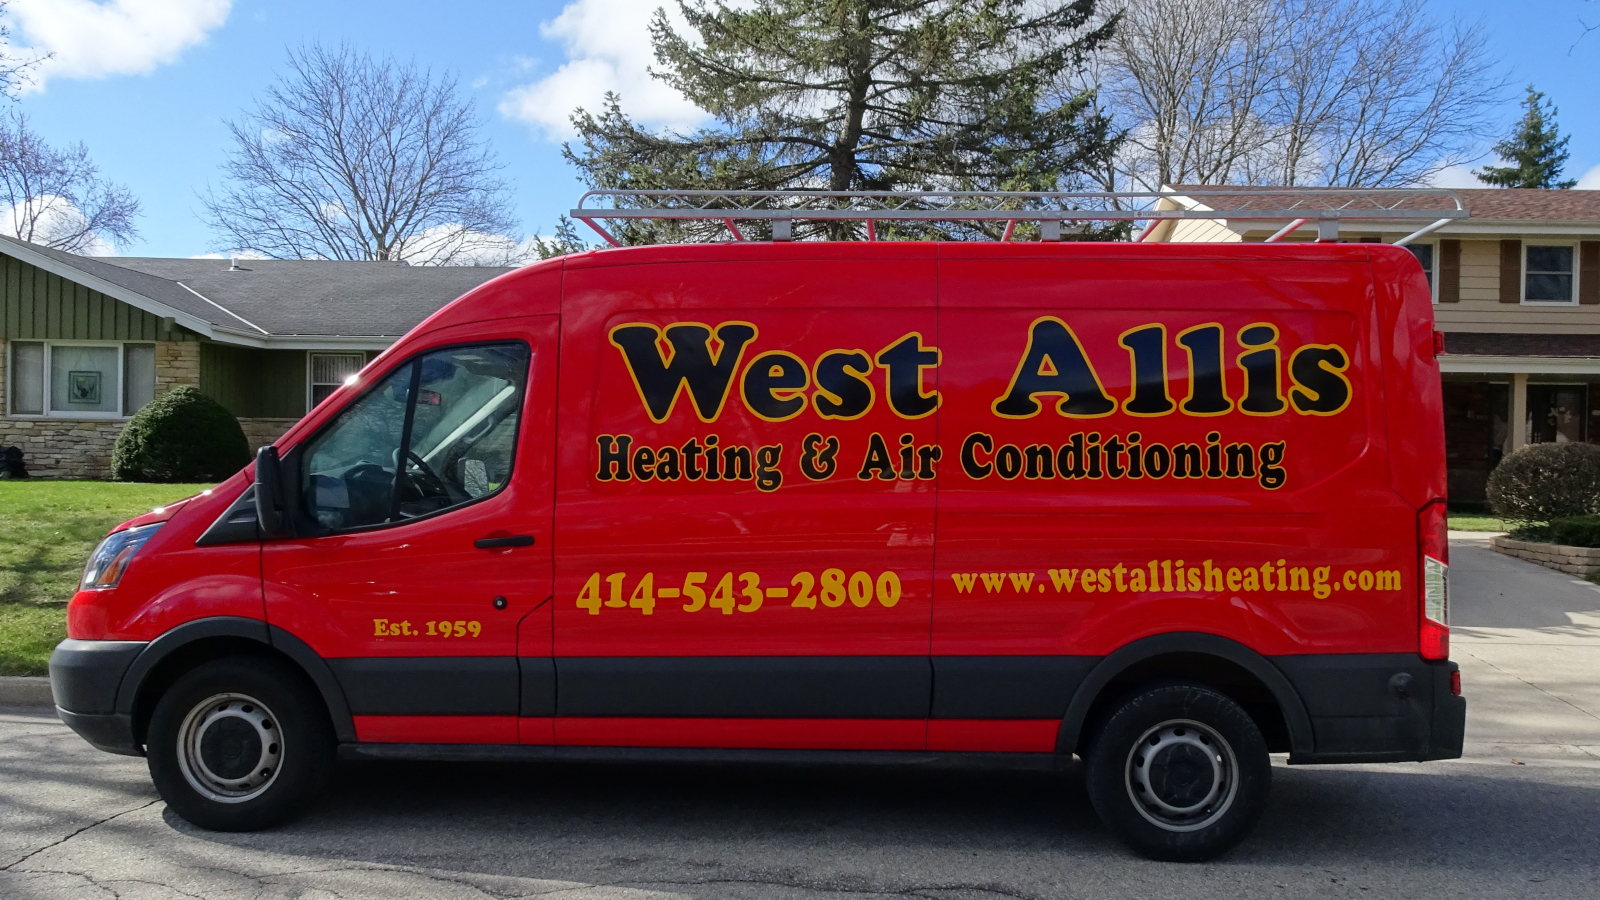 West Allis Heating service truck in front of home